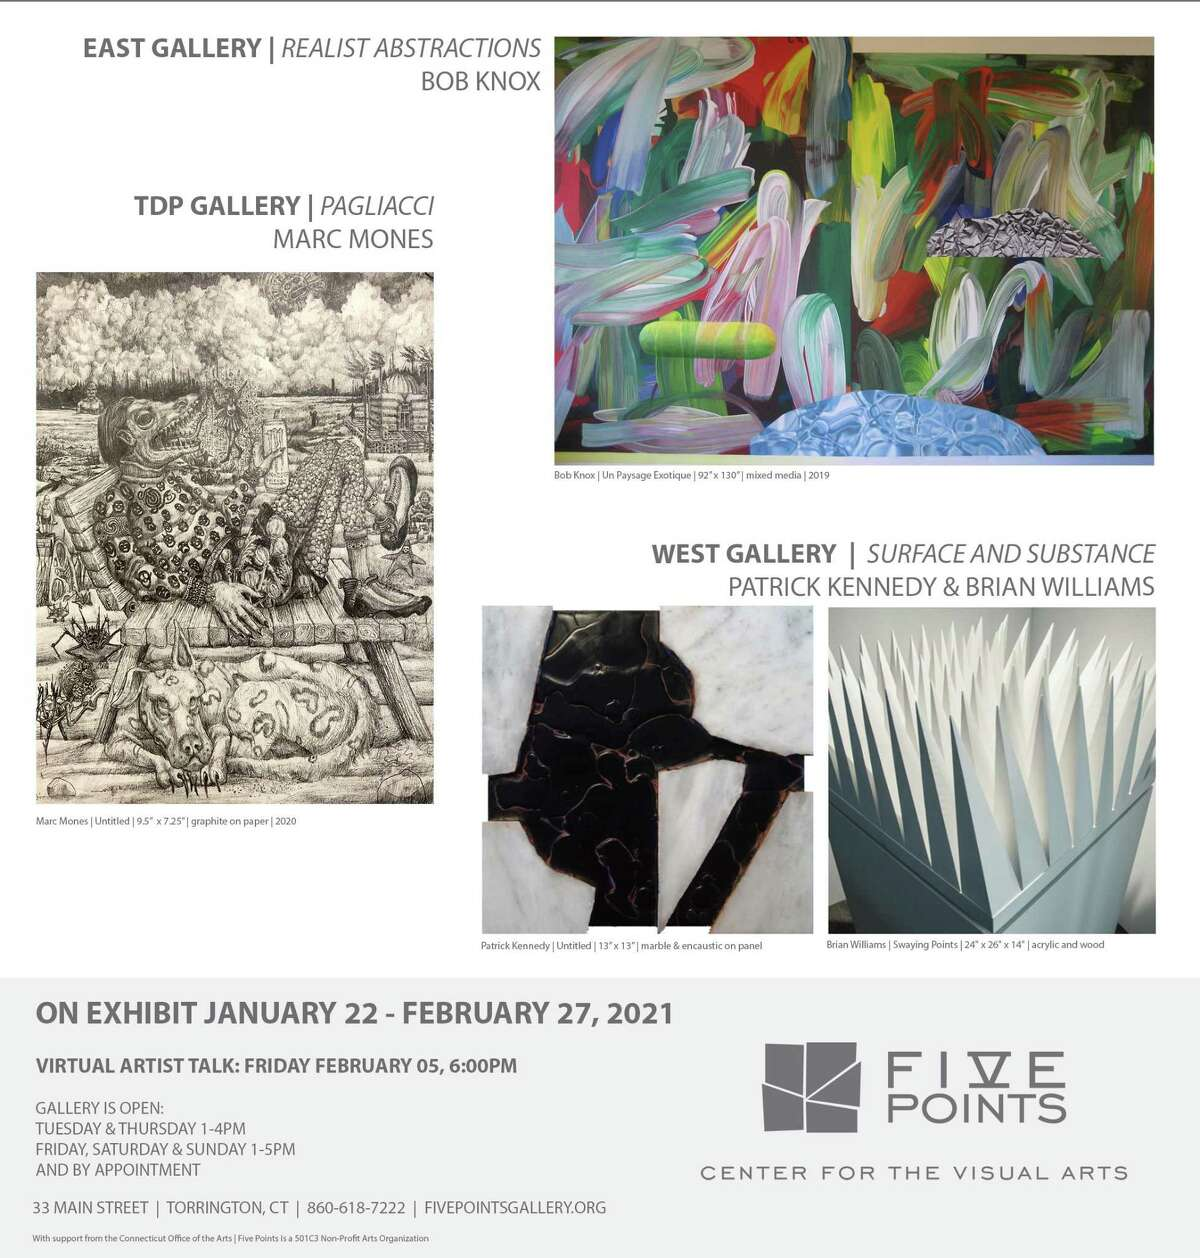 Five Points Gallery, 33 Main St., is opening three new exhibitions Jan. 22: East Gallery, artist Bob Knox,